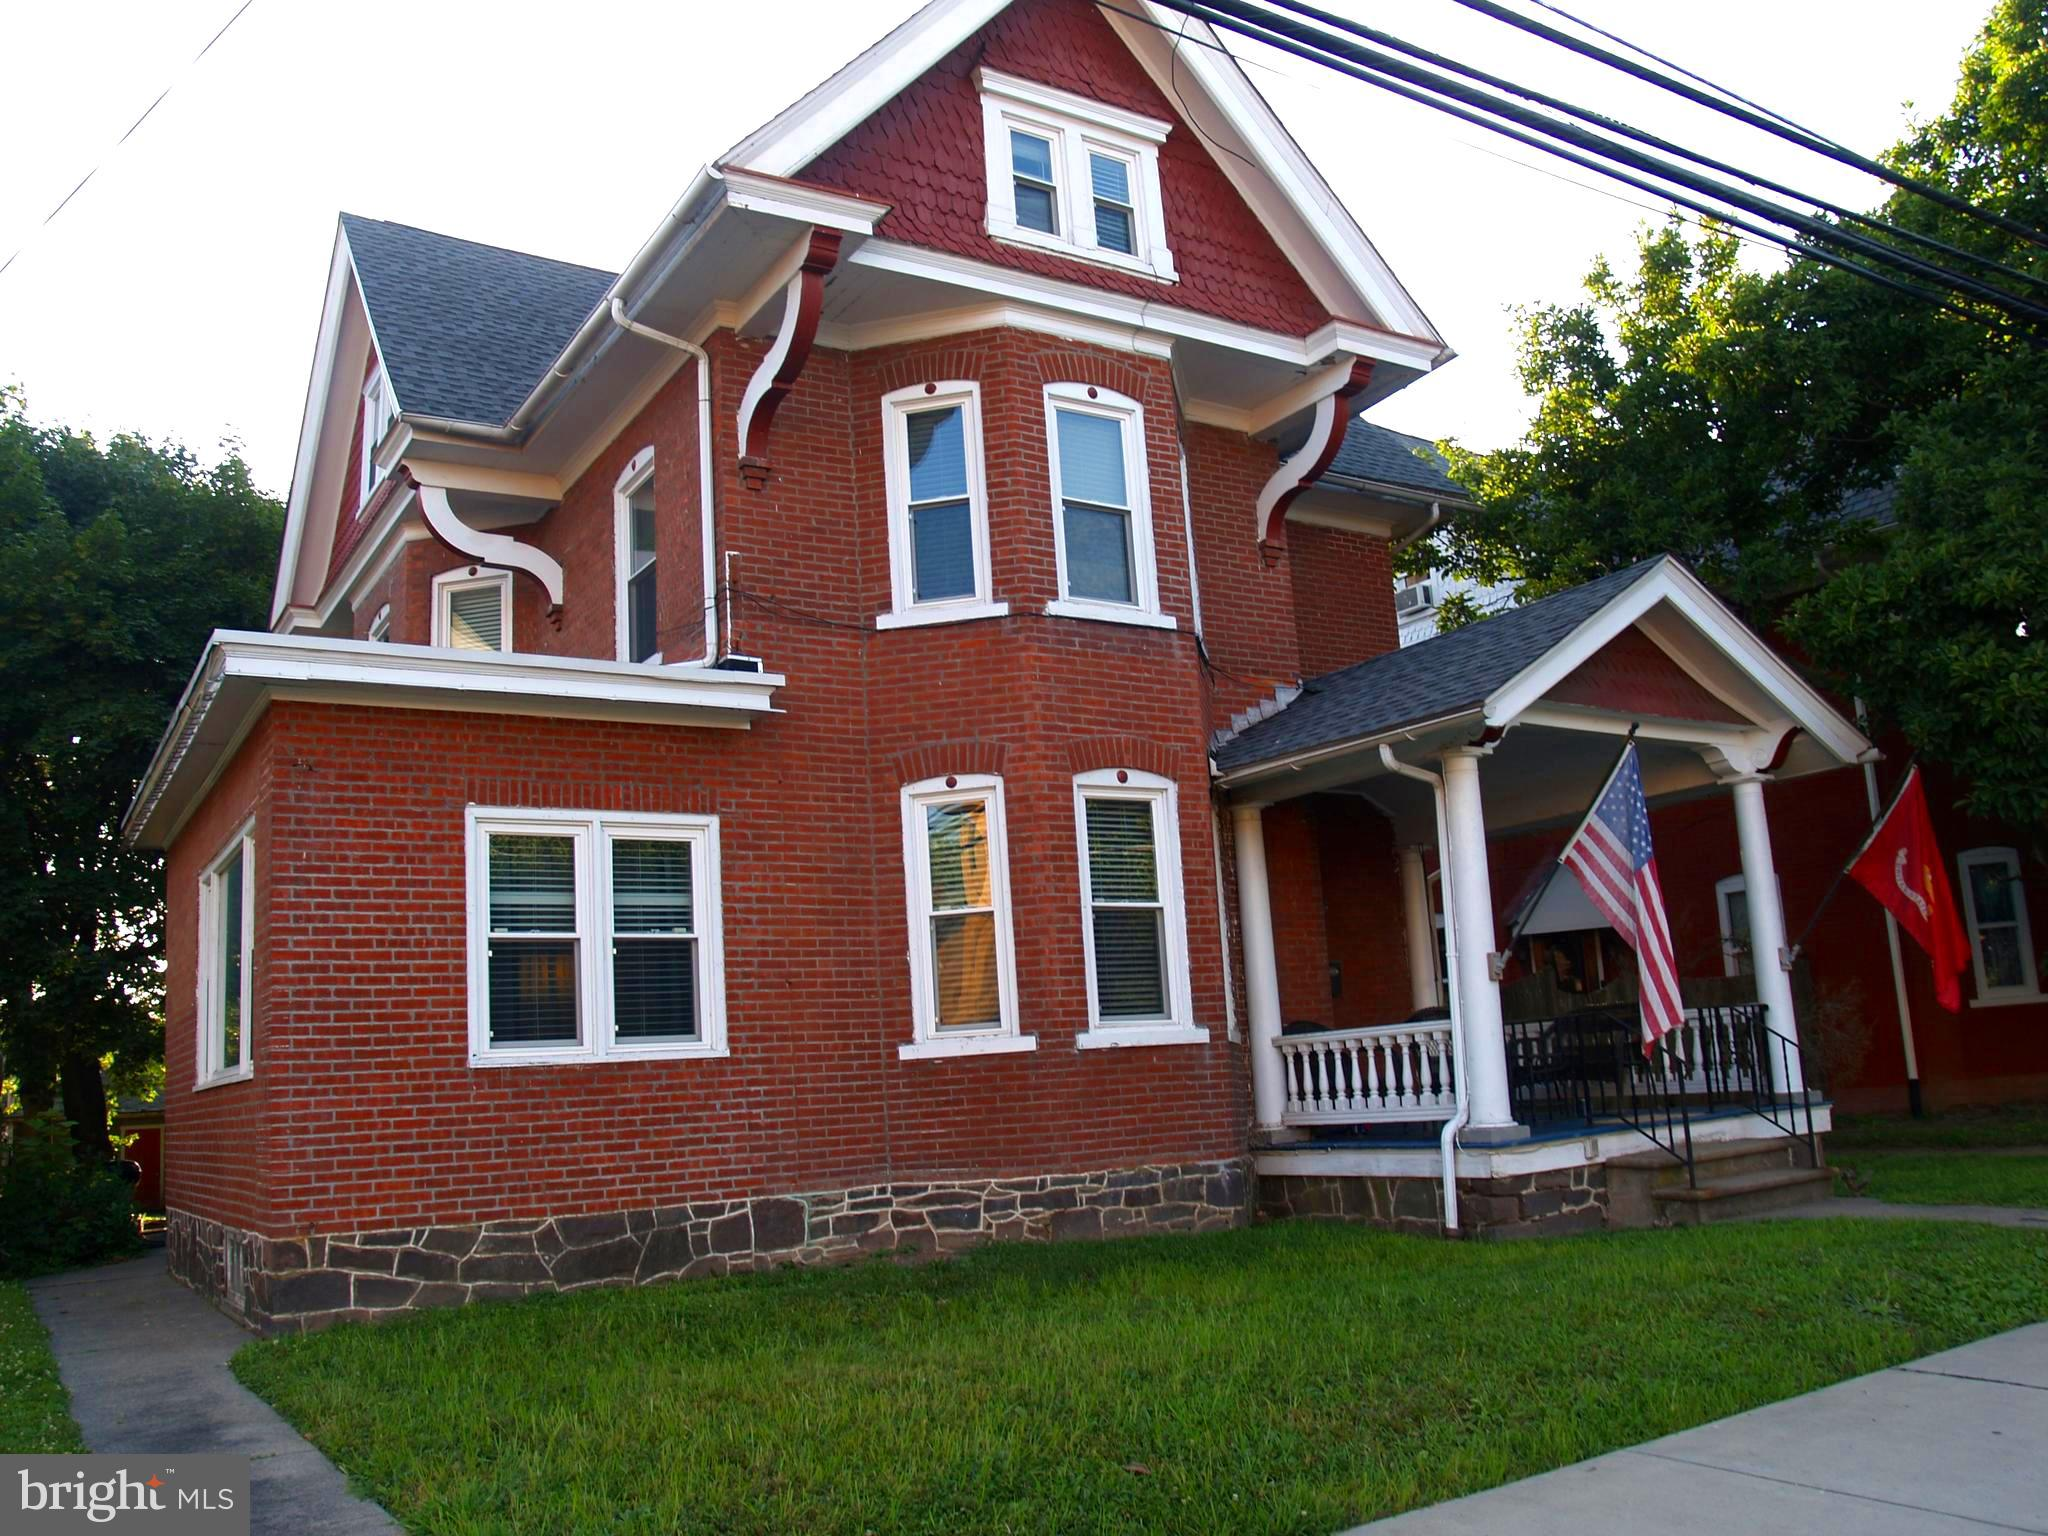 411 MAIN STREET, RED HILL, PA 18076